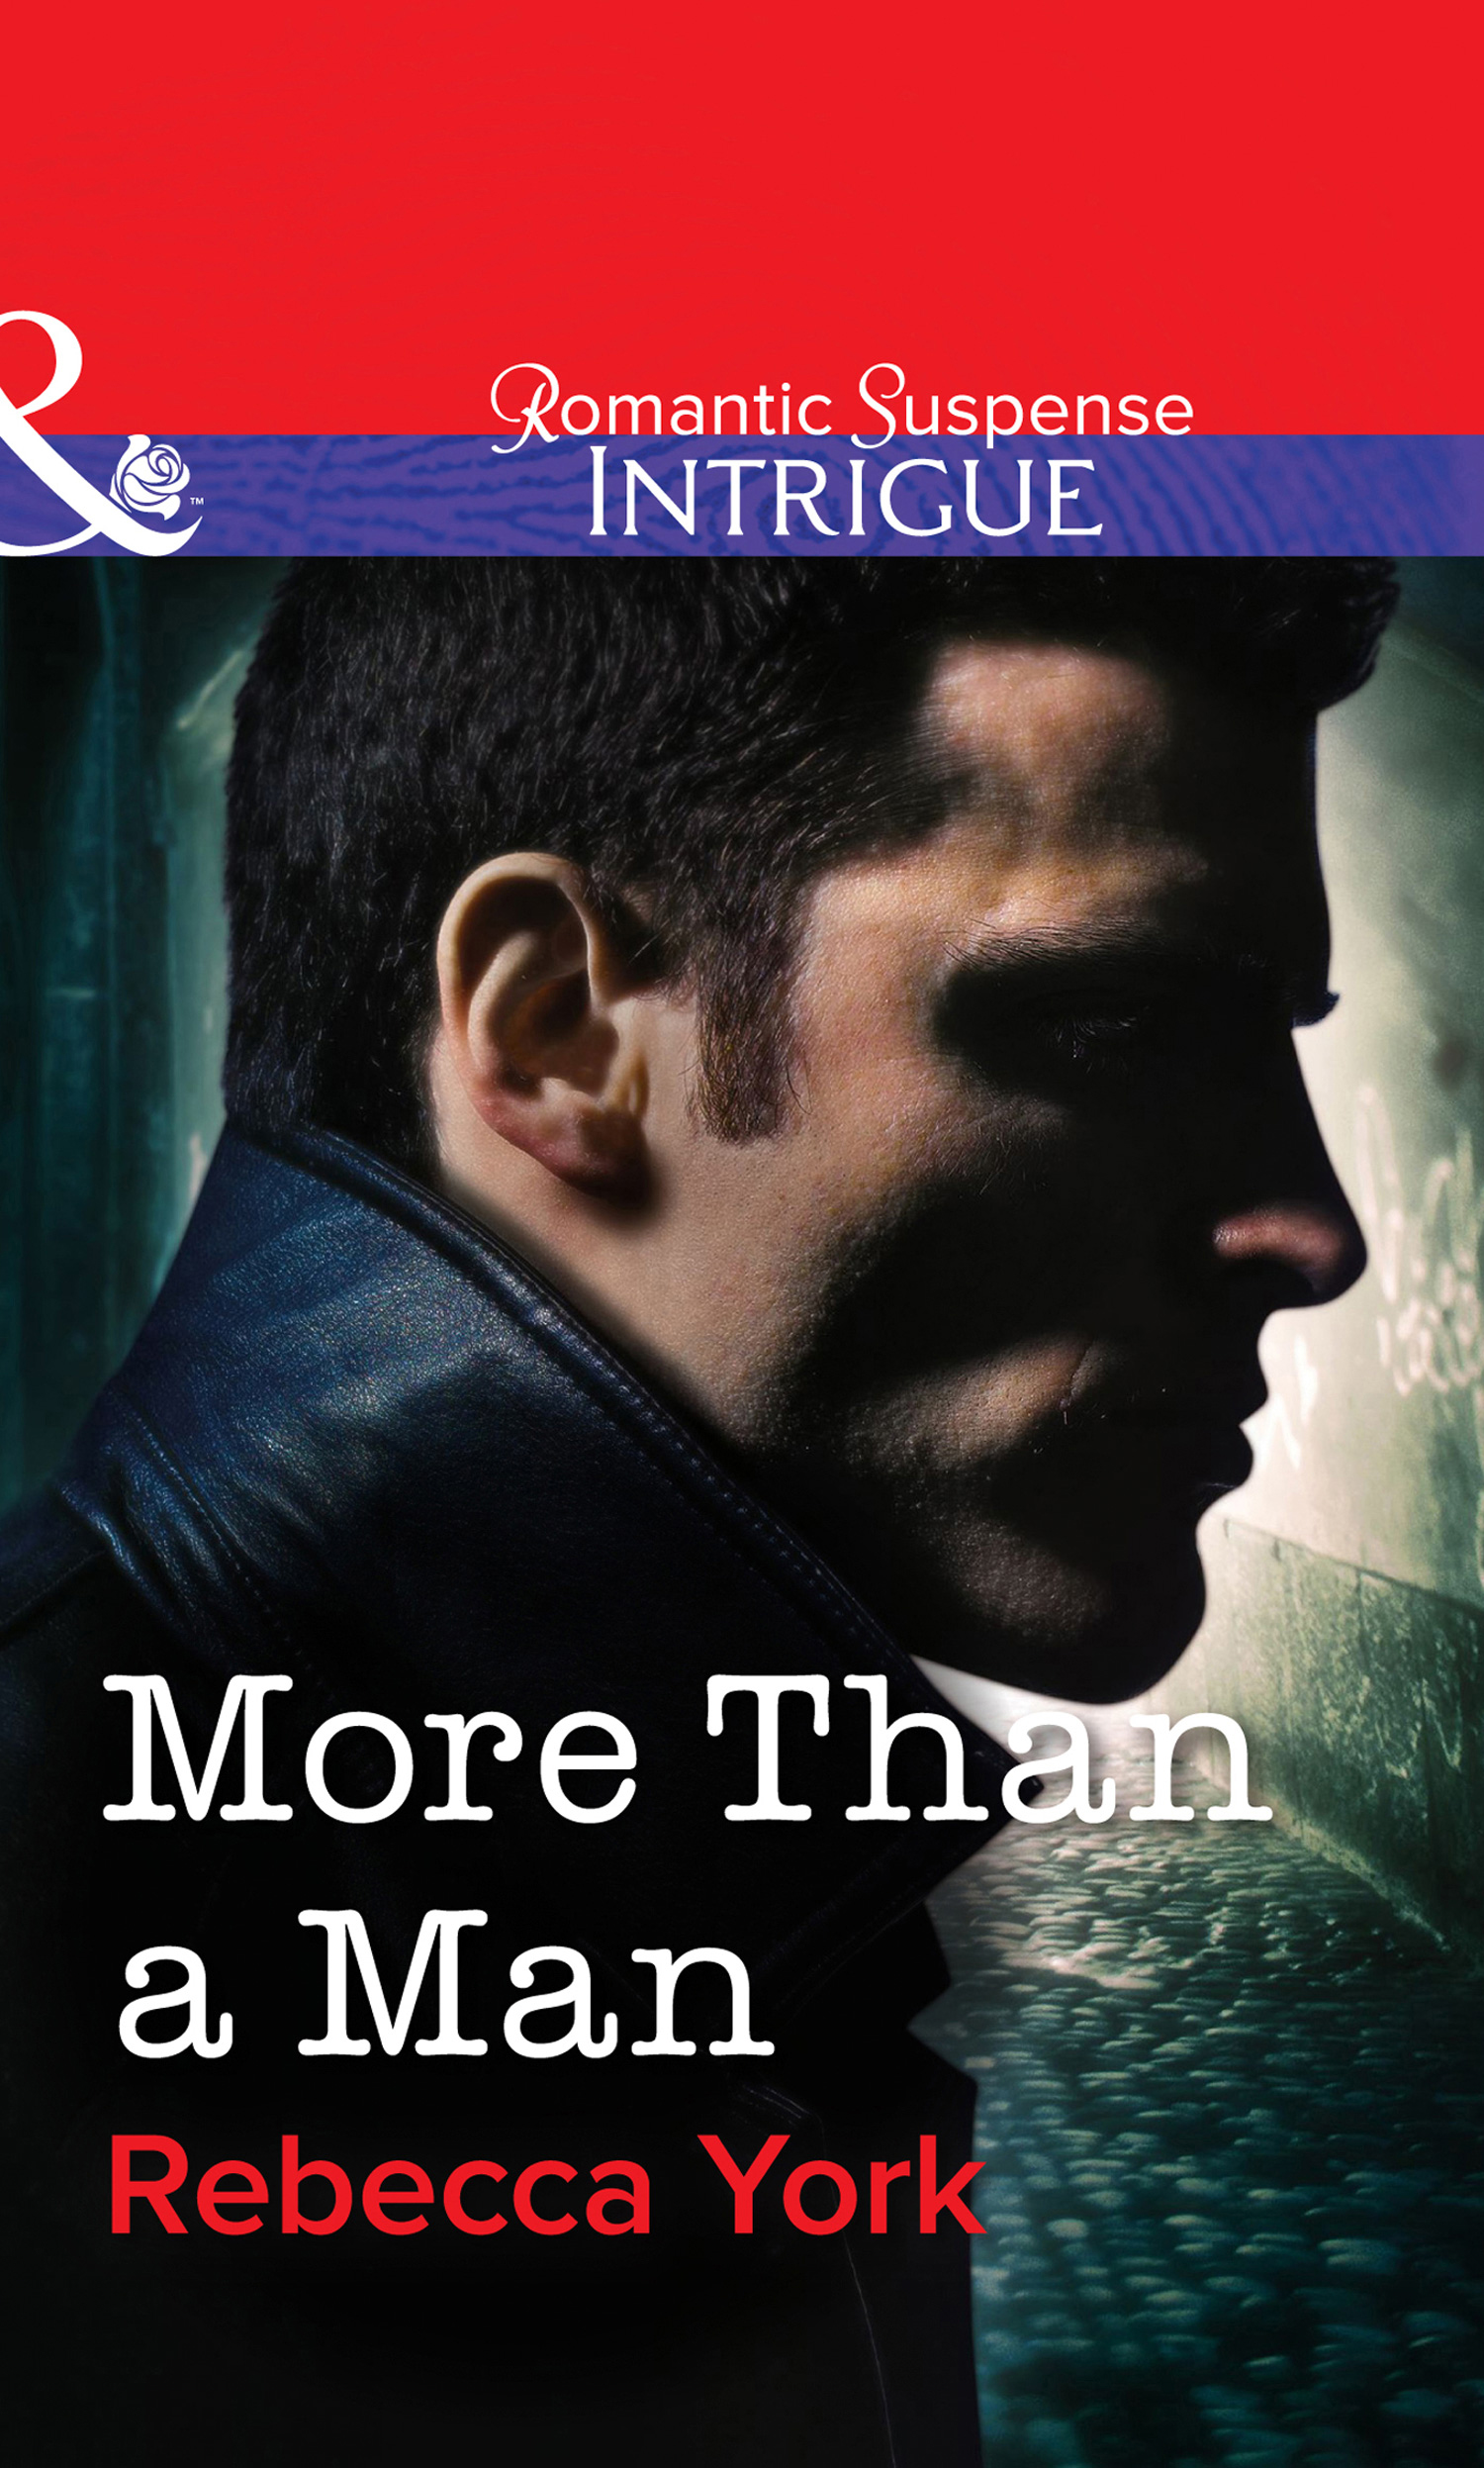 More Than a Man